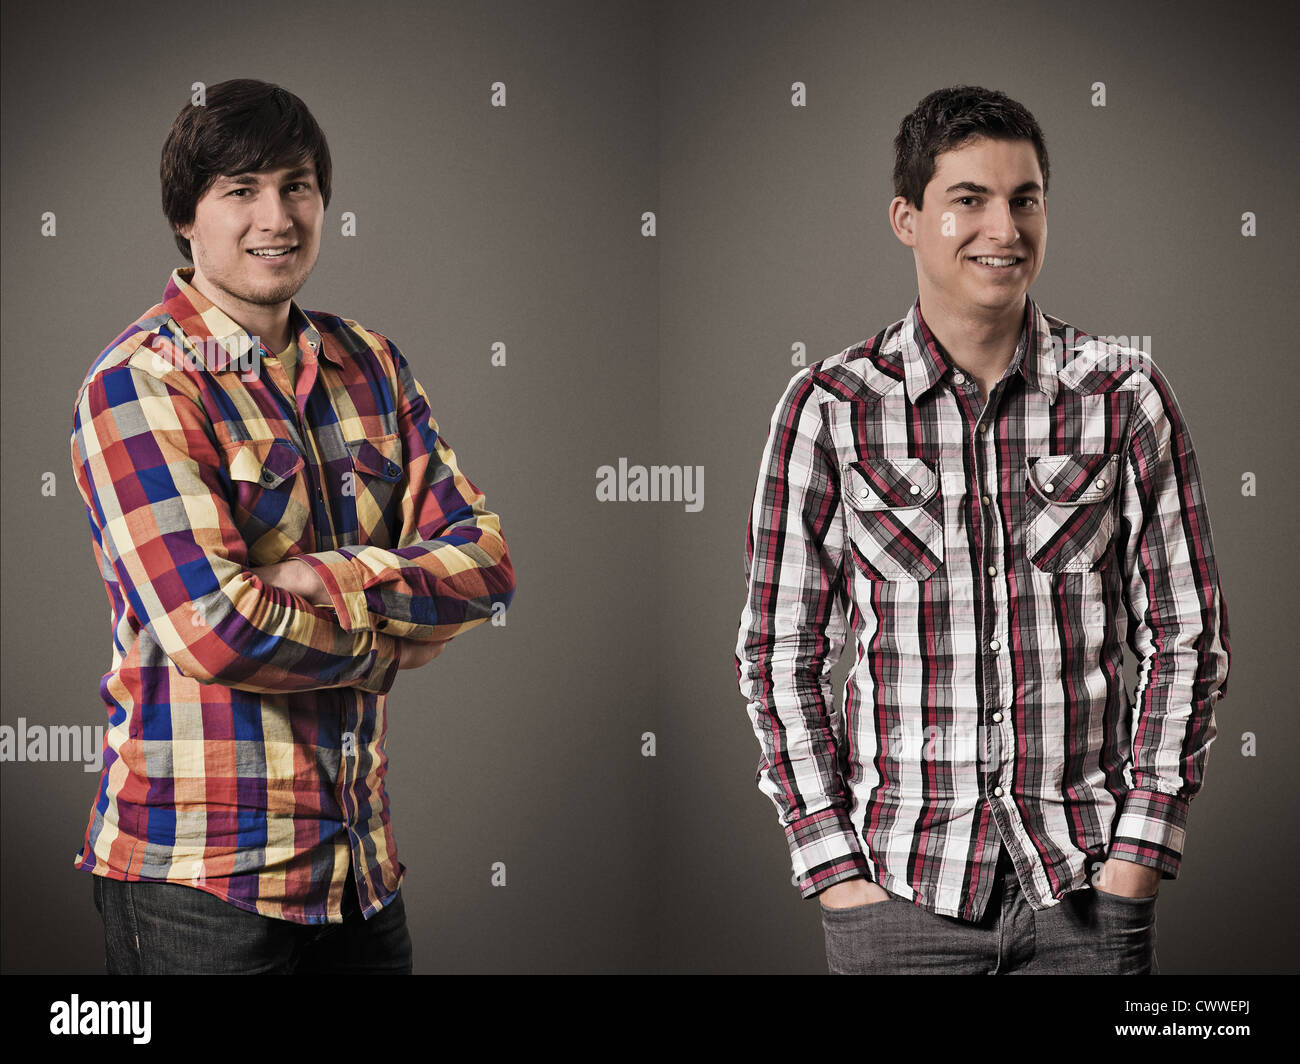 Two smiling men posing for portrait - Stock Image